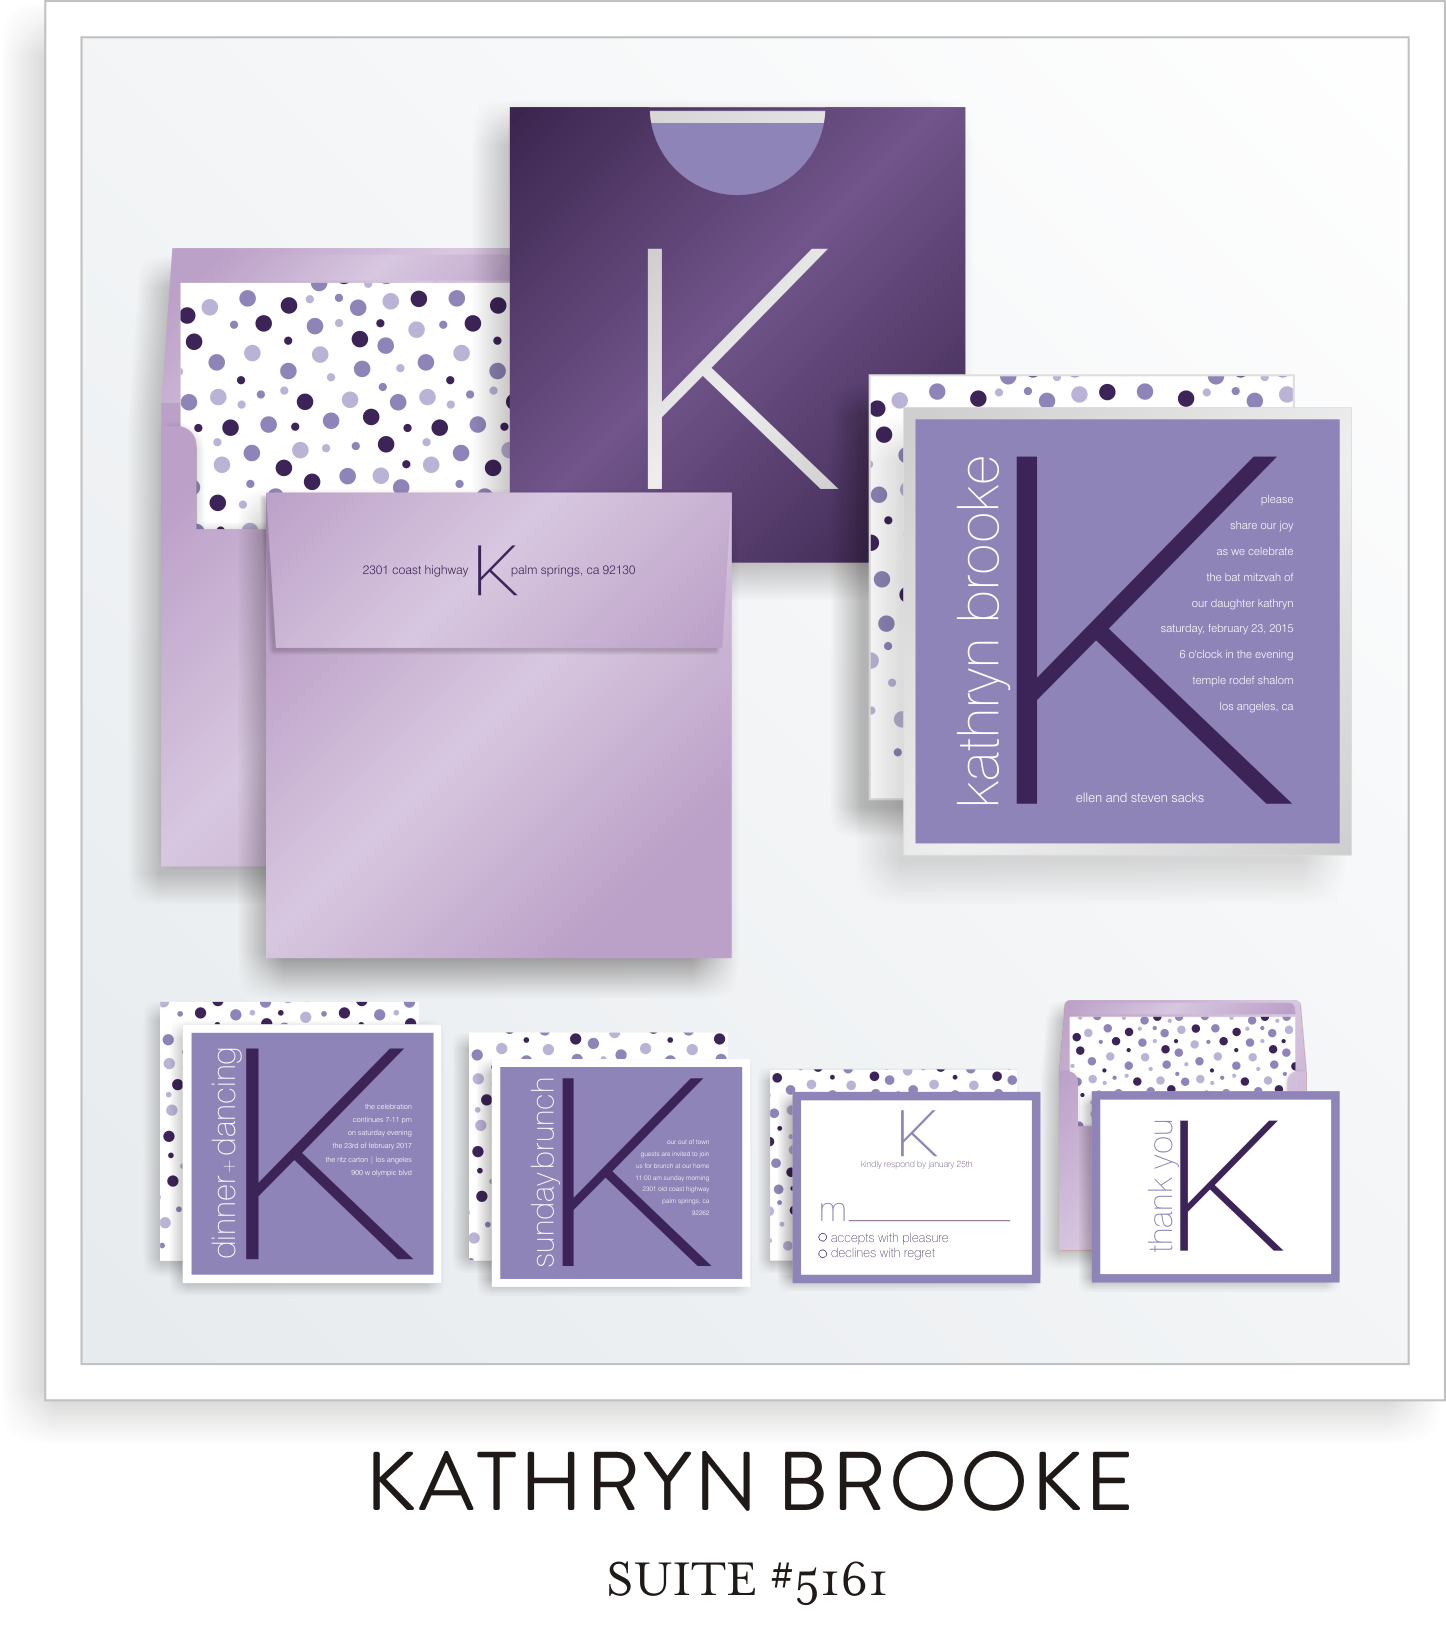 Bat Mitzvah Invitation Suite 5161 - Kathryn Brooke